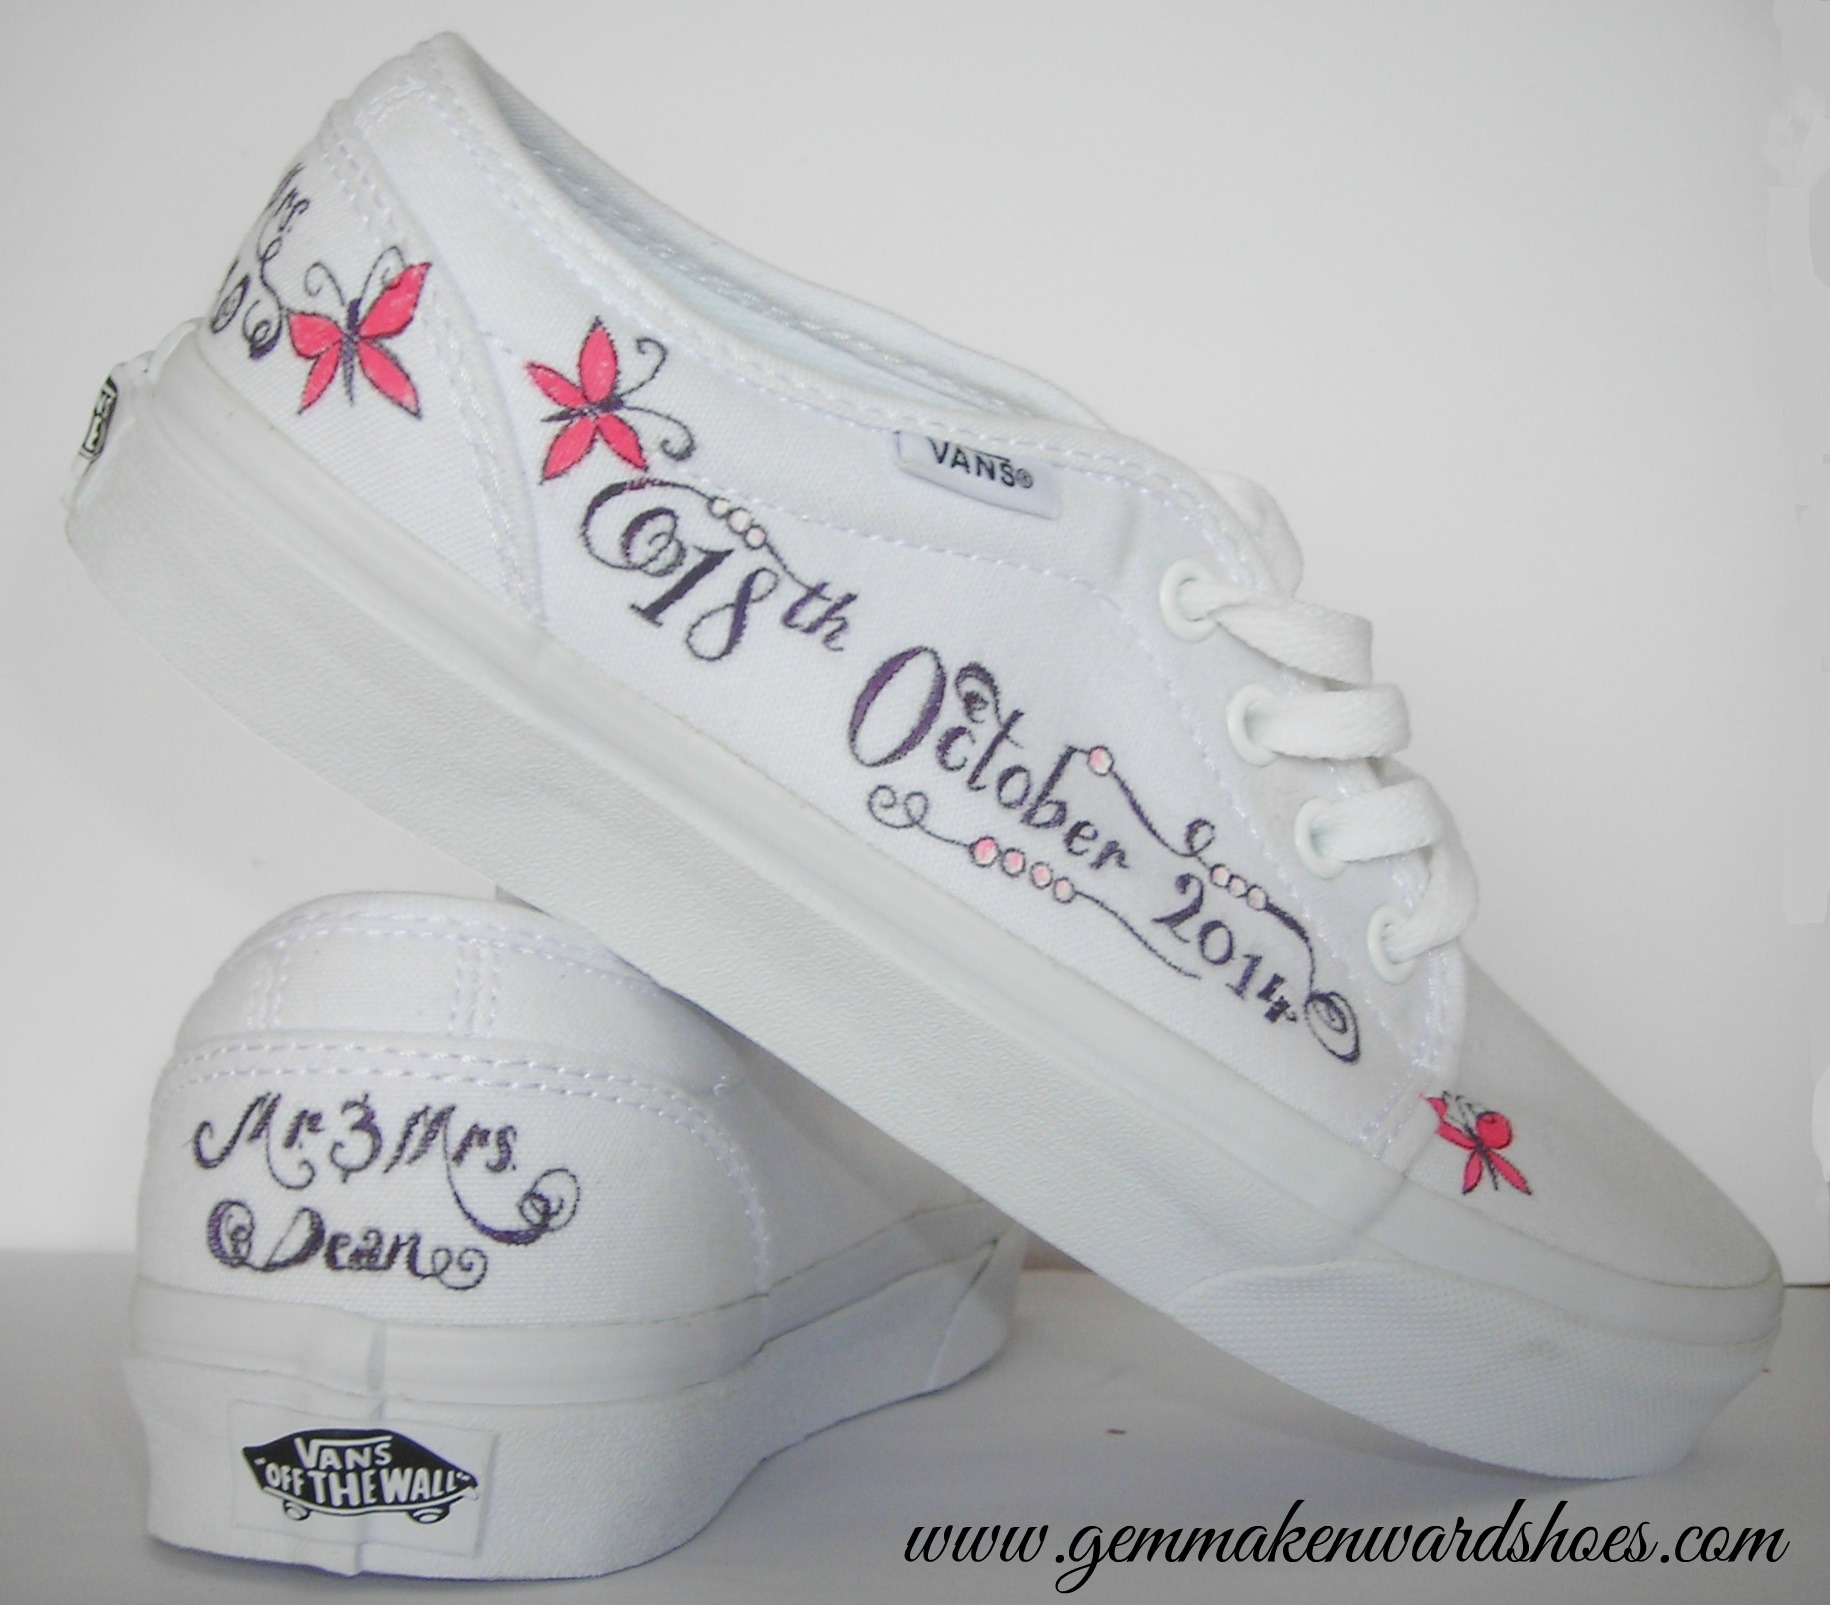 Hand Painted Vans (trainers) for a wedding in October. Personalised with vintage pearls and butterflies.